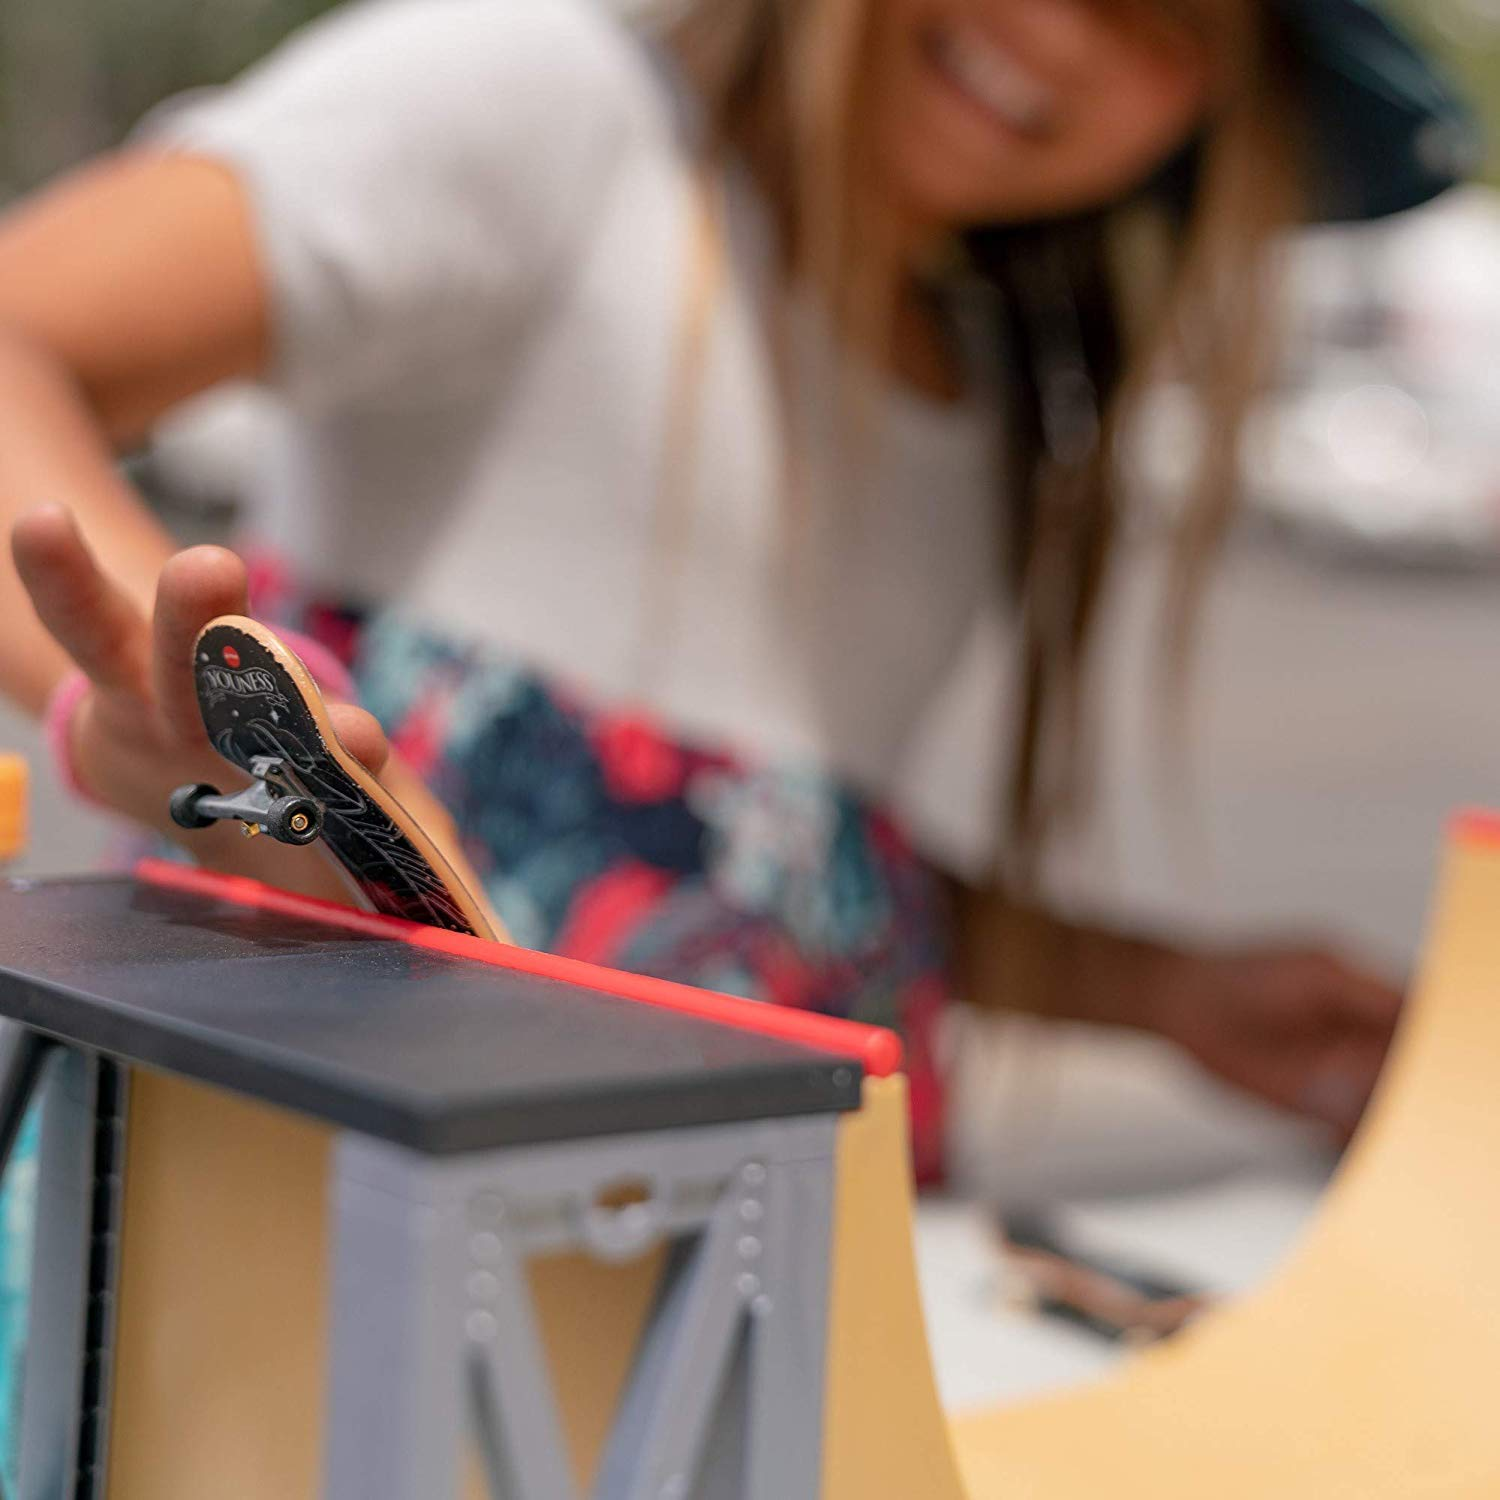 Tech Deck - Ultimate Half-Pipe Ramp and Exclusive Primitive Pro Model Finger Board, for Ages 6 and Up by Tech Deck (Image #7)